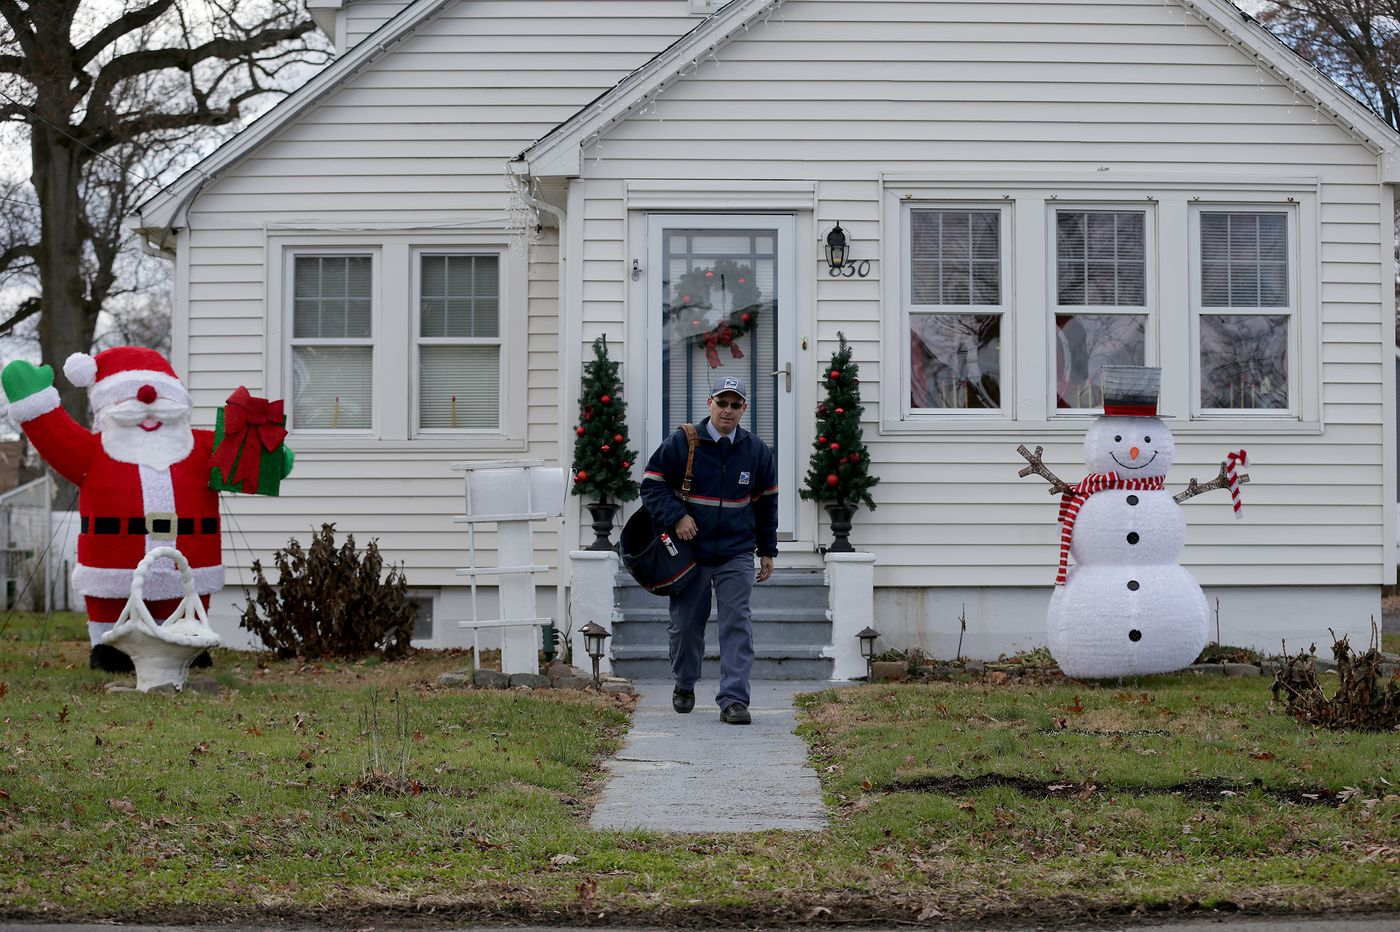 Tip or no holiday tip? Etiquette for letter carriers, dog walkers, and other VIPs